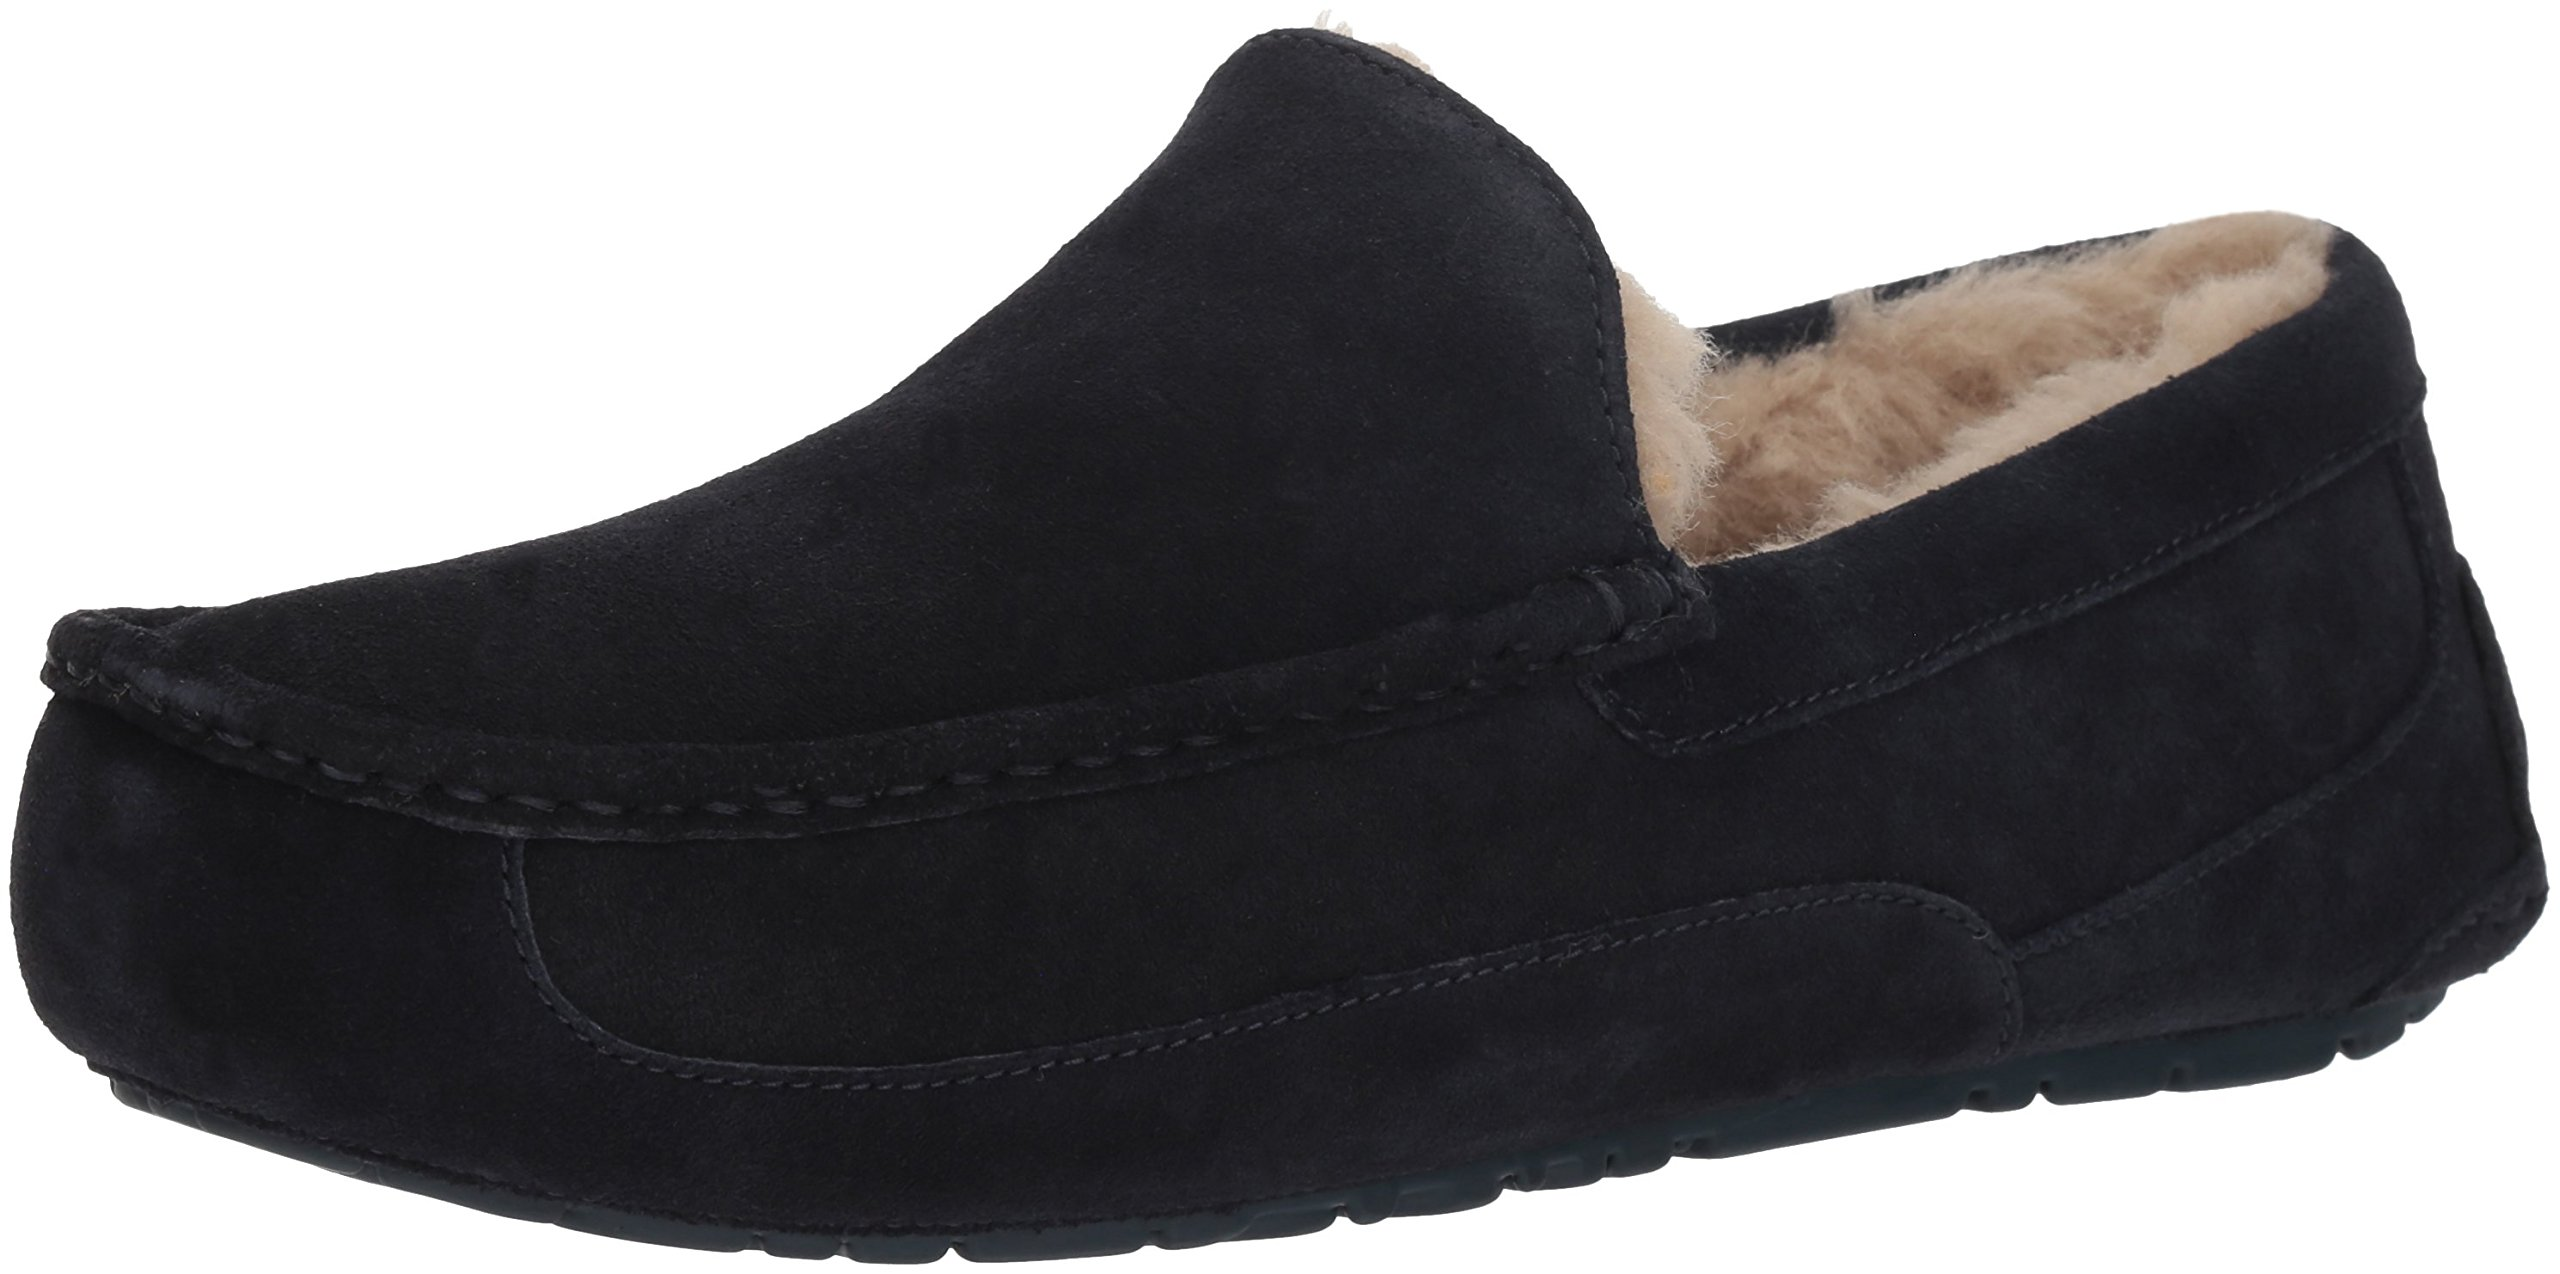 UGG Men's Ascot Slipper, True Navy, 12 M US by UGG